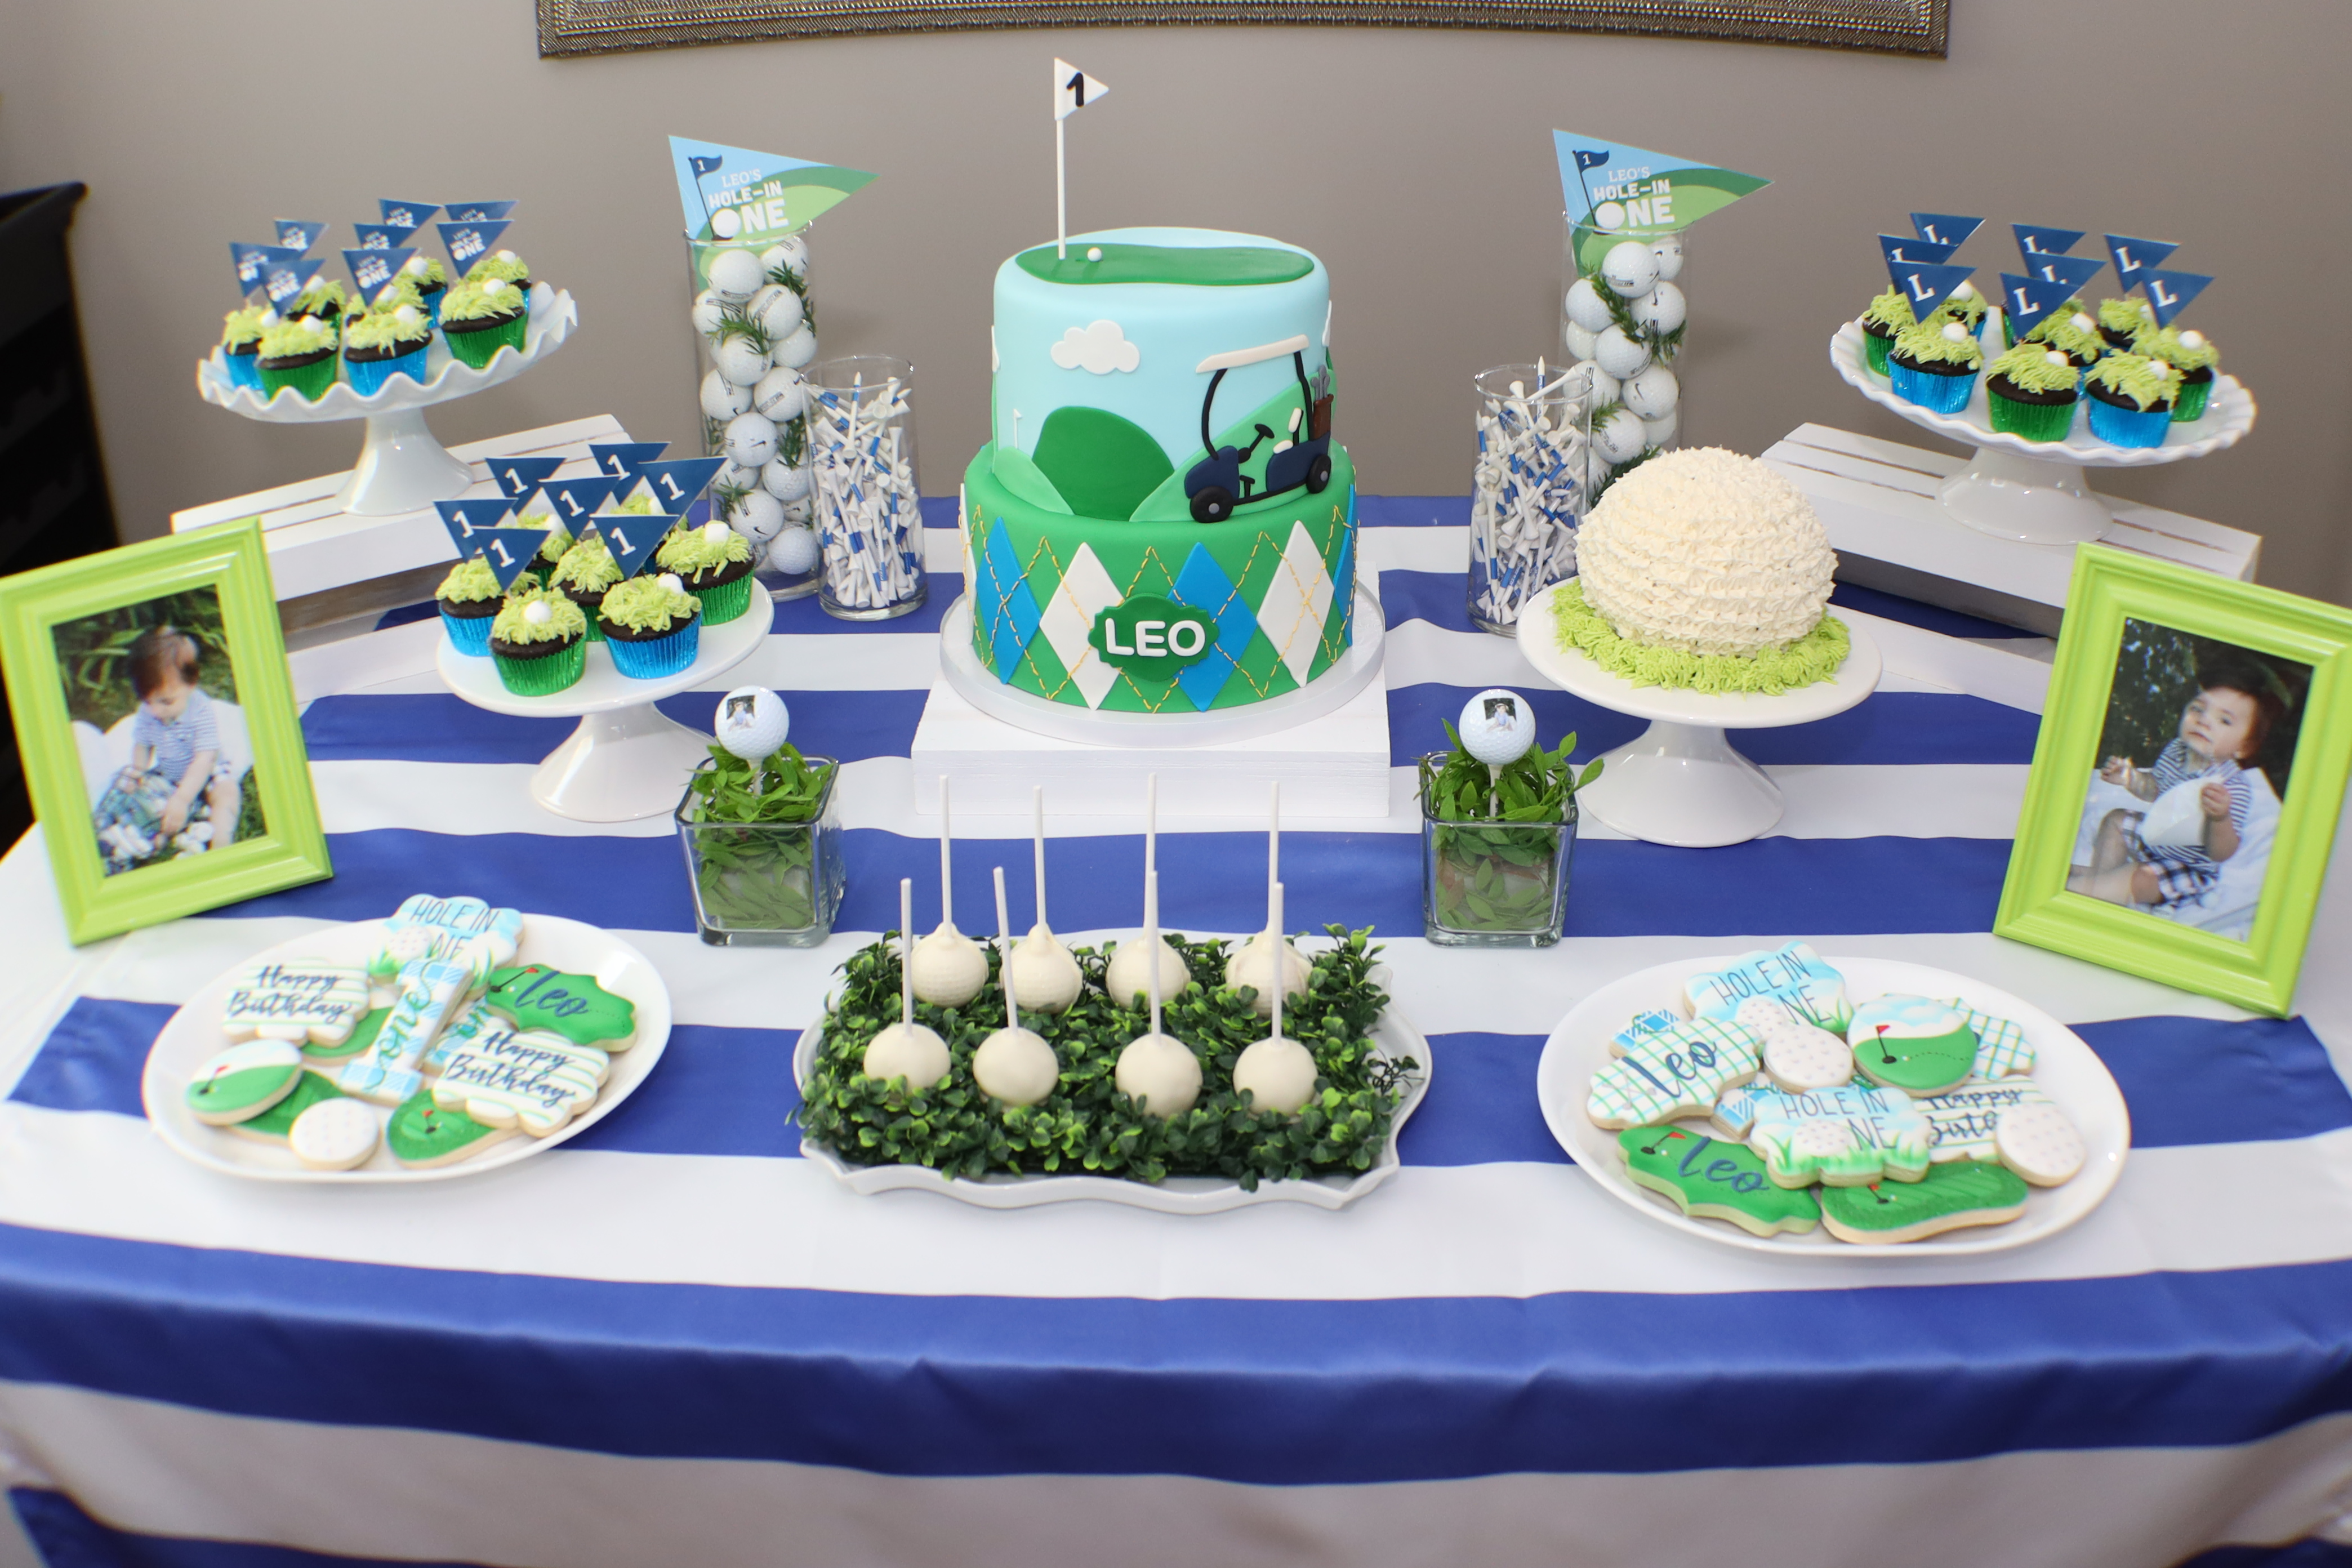 Pleasant A Hole In One Party Golf Theme 1St Birthday Pink Roses Home Interior And Landscaping Pimpapssignezvosmurscom